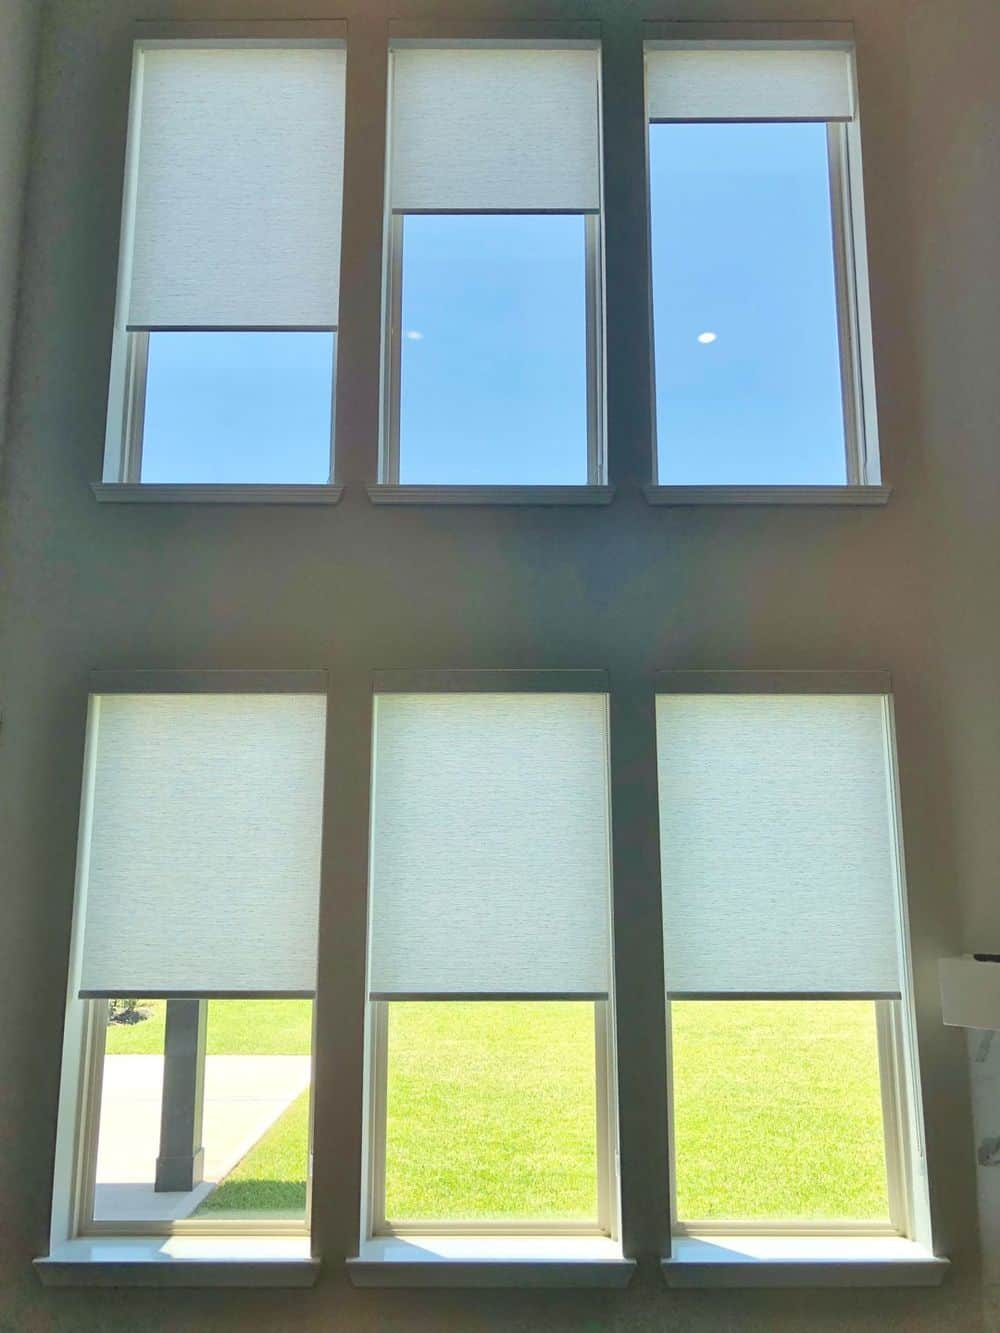 A focused shot at this home's windows featuring window shades. The house features gray walls and a high ceiling.